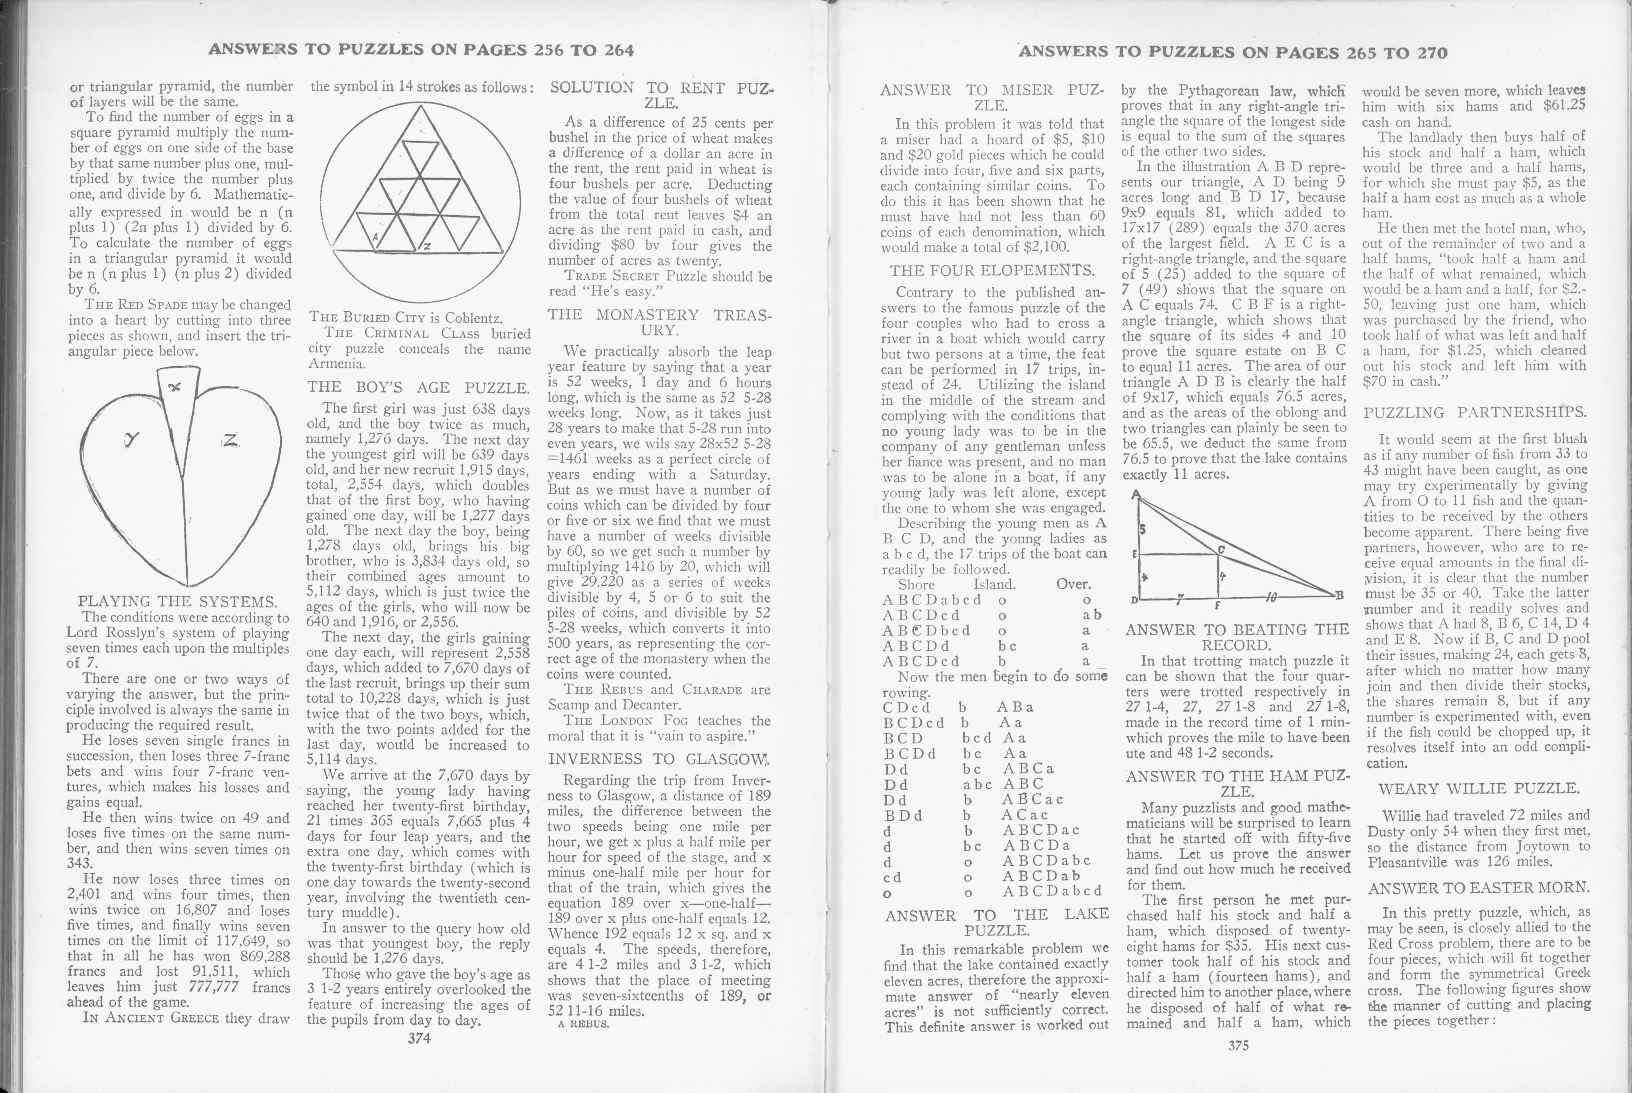 Sam Loyd - Cyclopedia of Puzzles - page 374-375